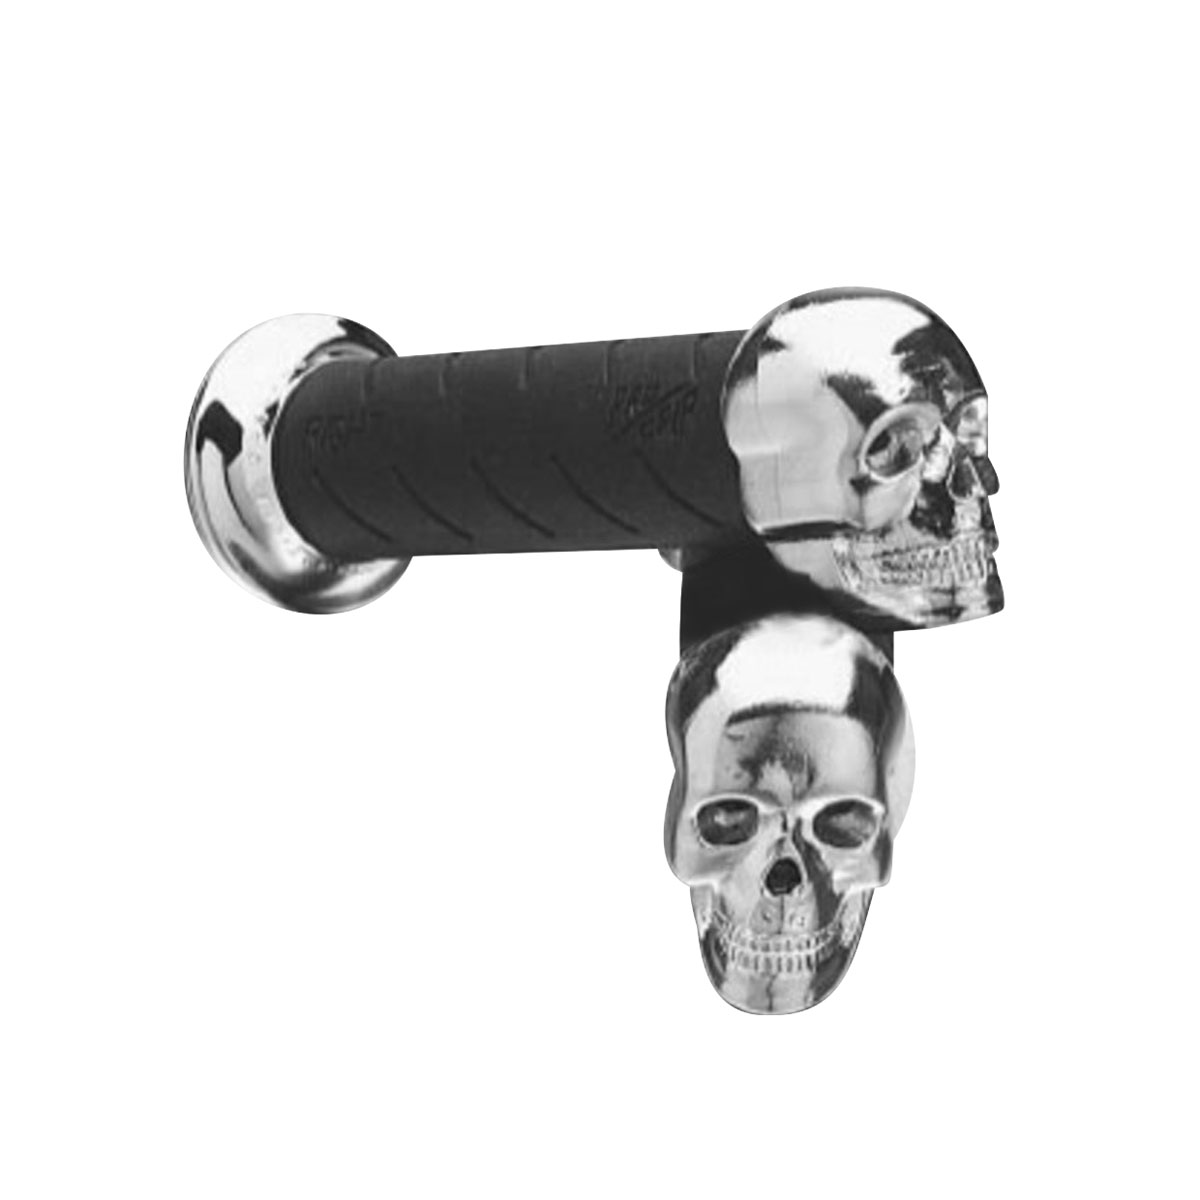 PROGRIP Damping Grips with Skull End Caps